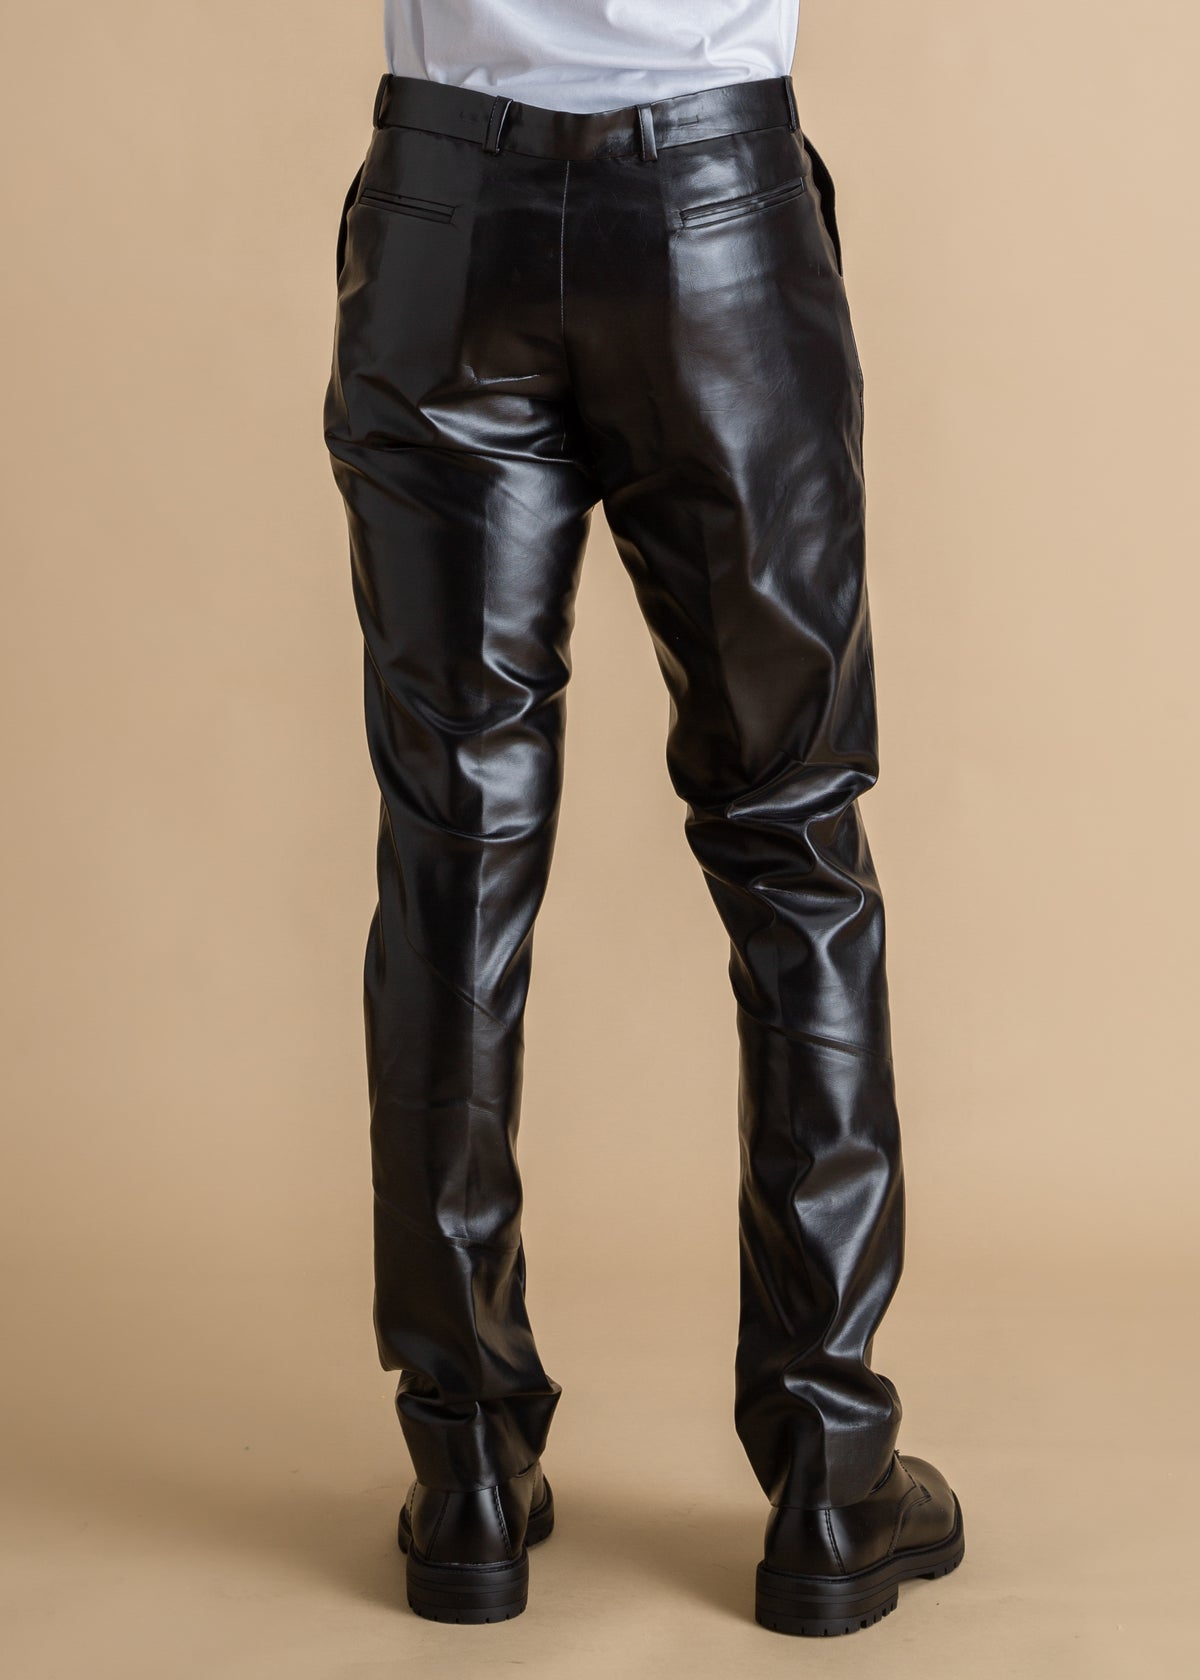 Tokyo James patent leather pants